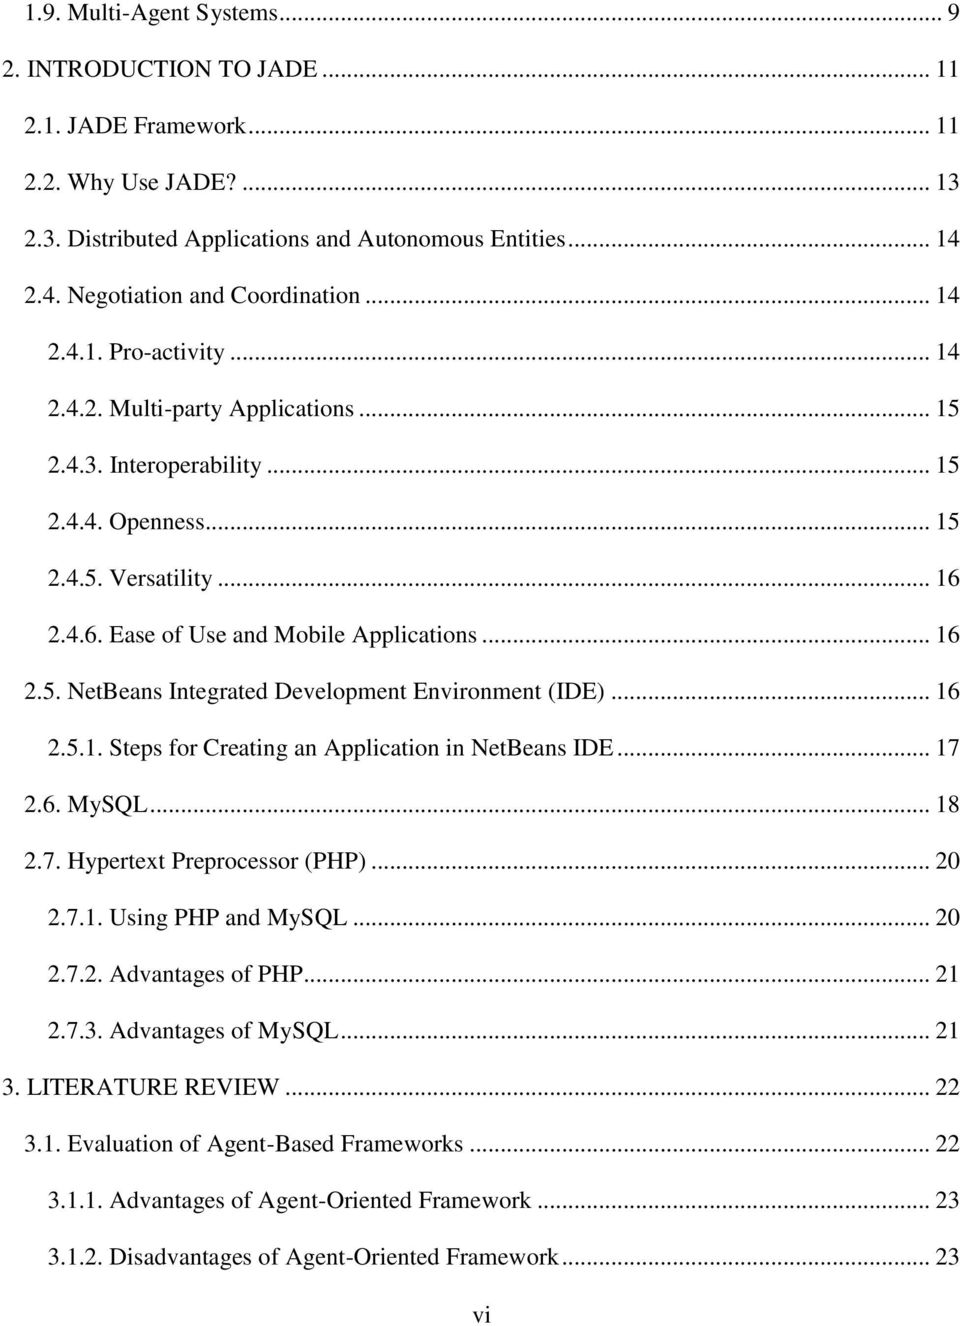 2.4.6. Ease of Use and Mobile Applications... 16 2.5. NetBeans Integrated Development Environment (IDE)... 16 2.5.1. Steps for Creating an Application in NetBeans IDE... 17